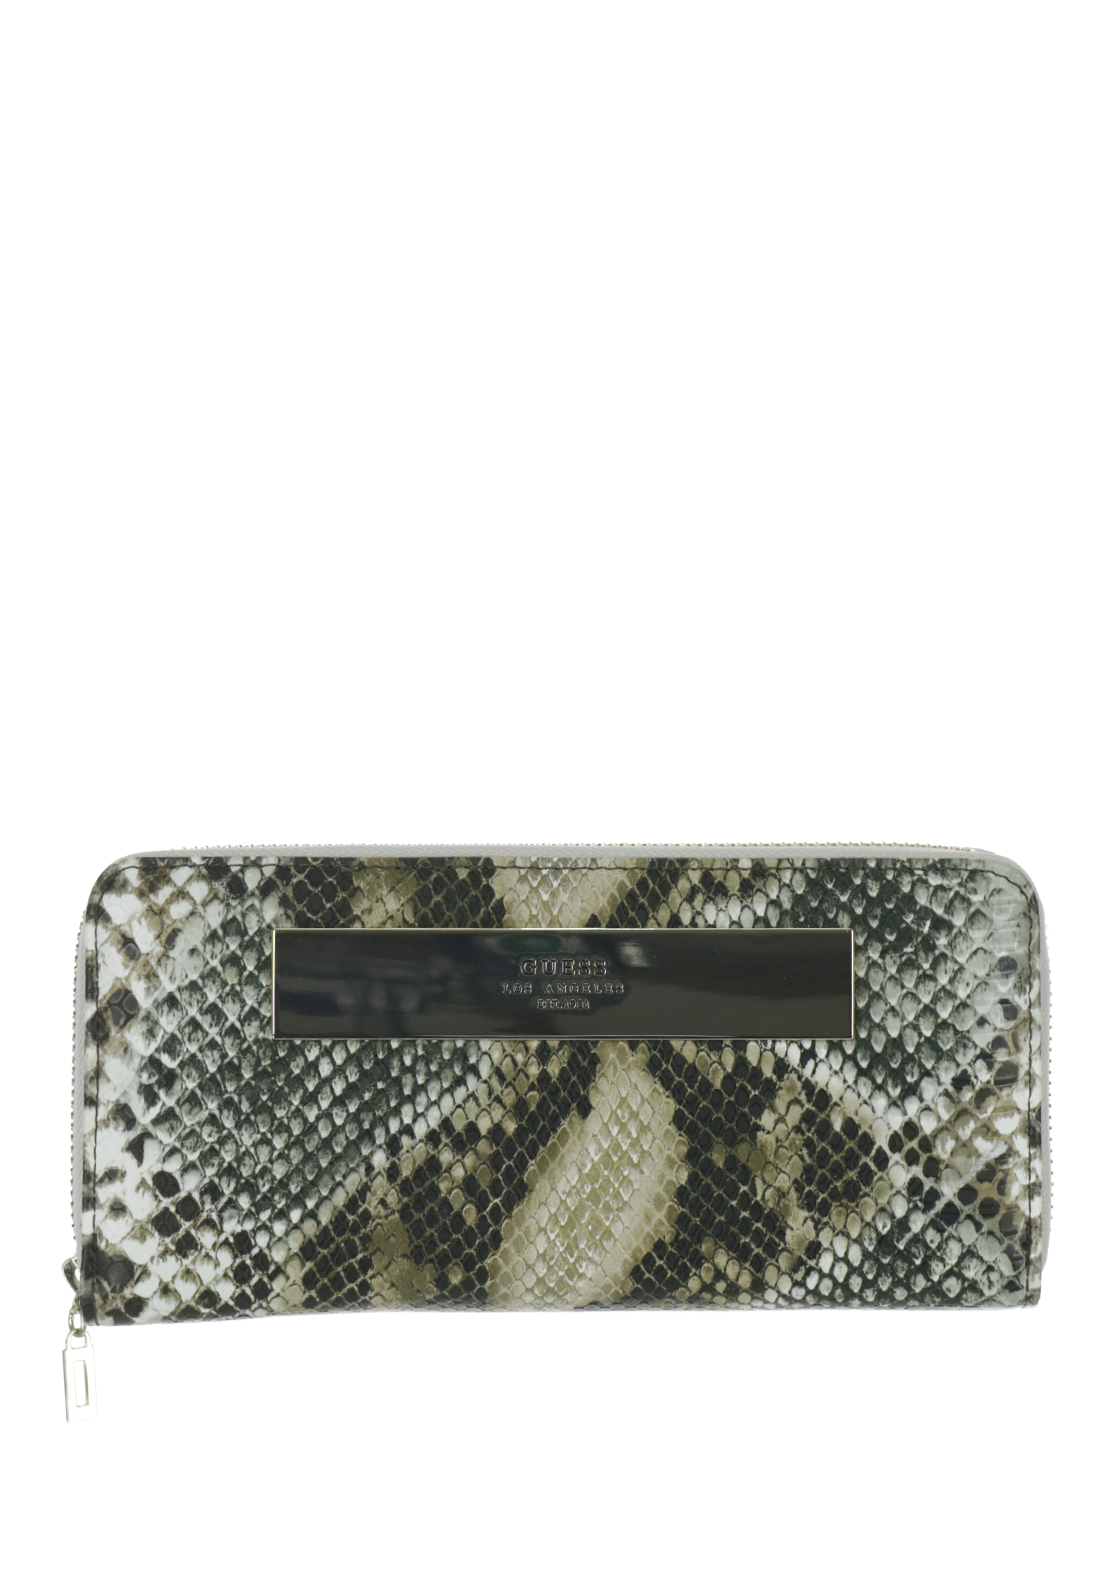 Guess Camylle Reptile Print Large Zip around Wristlet Purse, Multi-Coloured